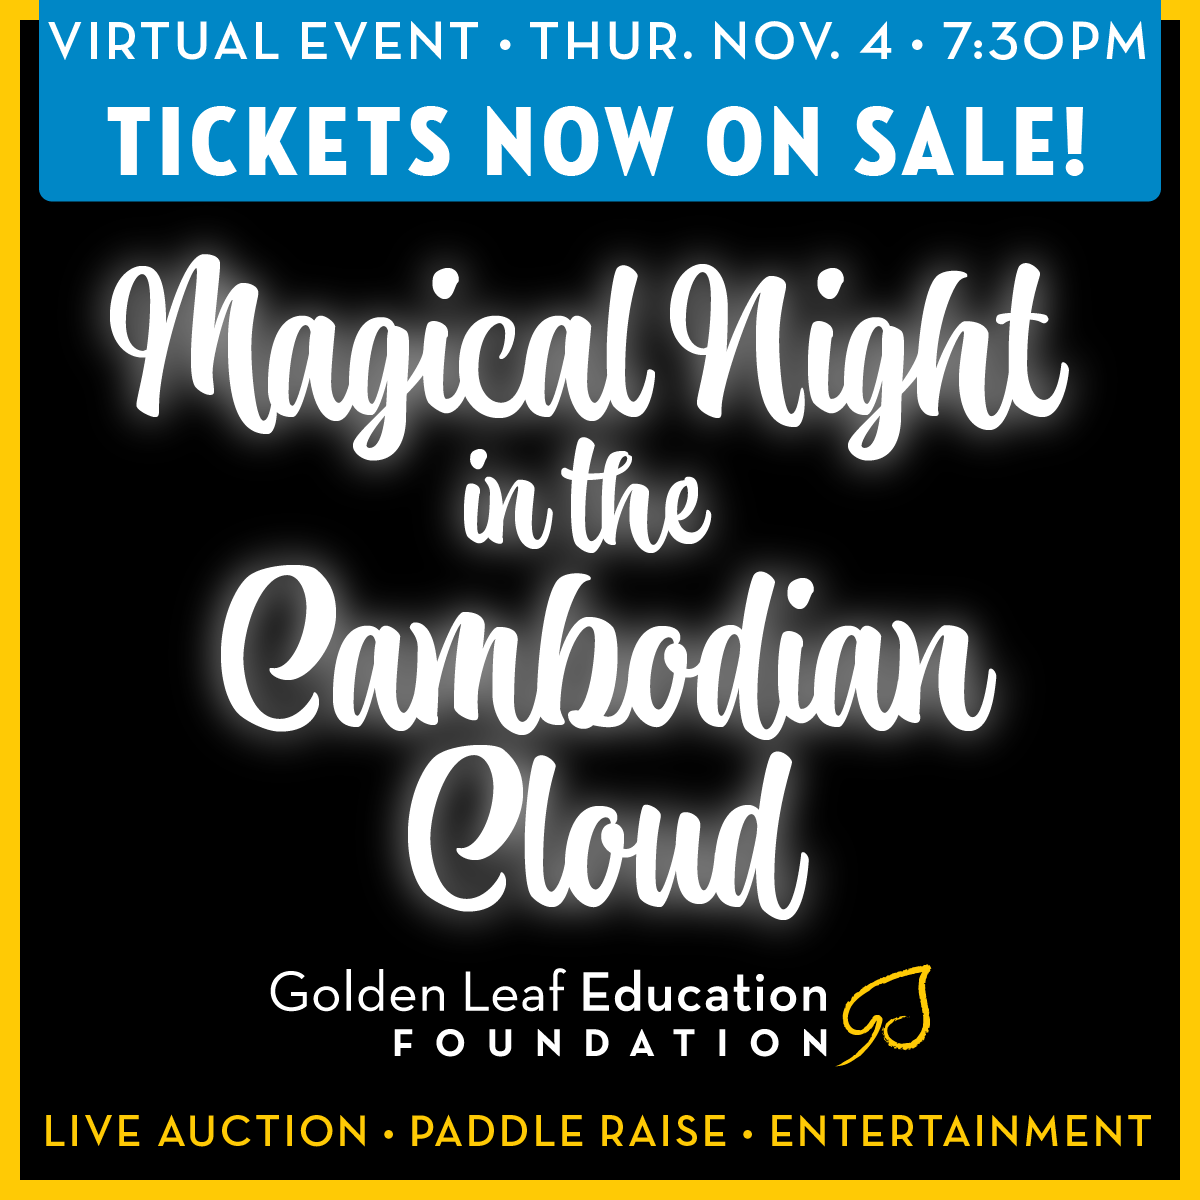 Magical Night in the Cambodian Cloud Benefit 11.4.2021